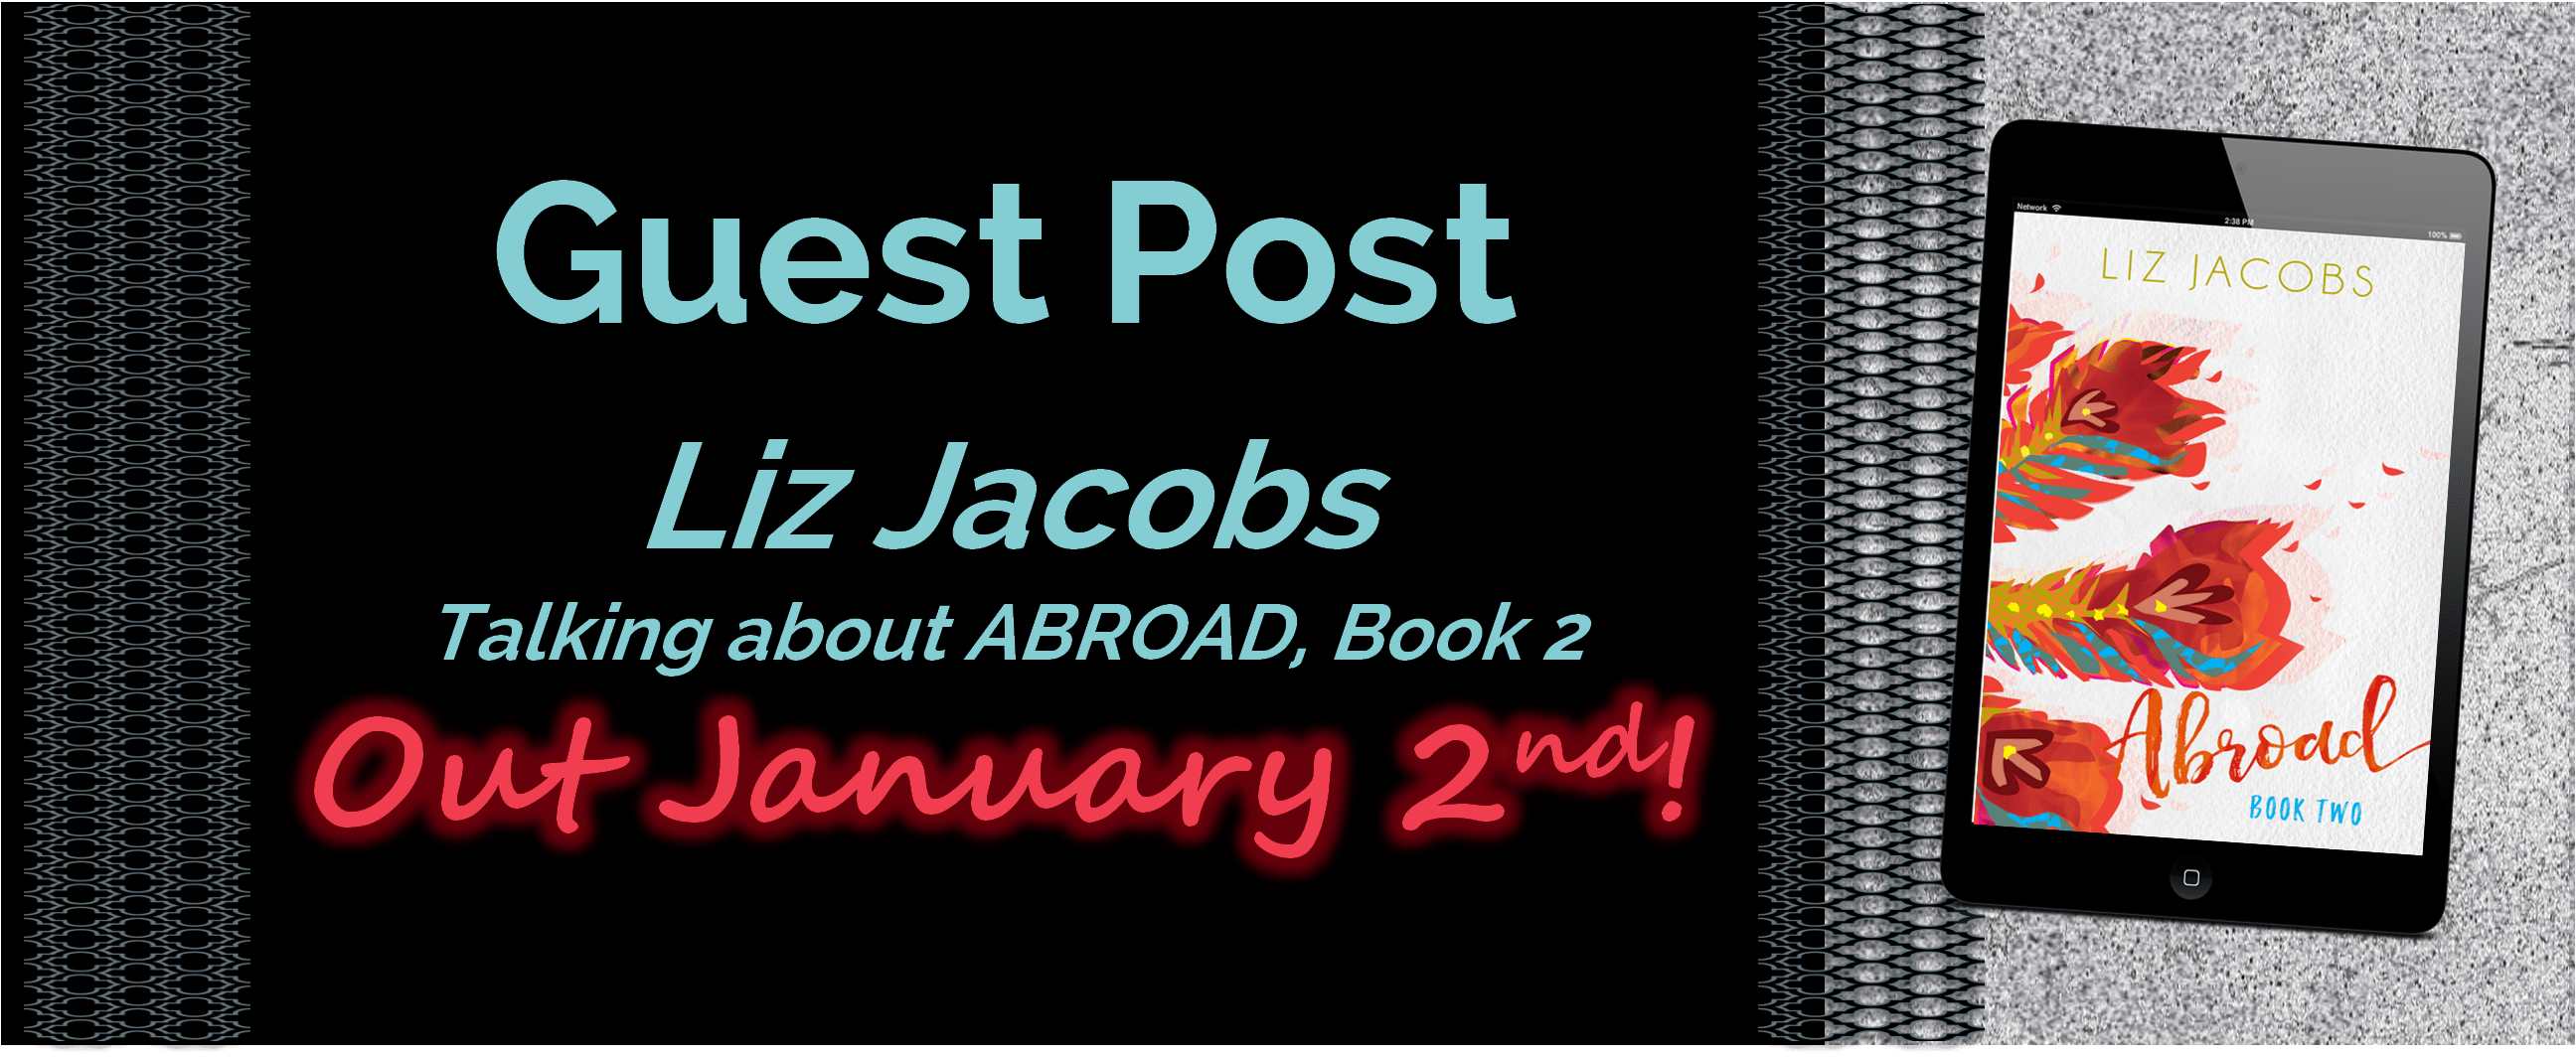 Guest Post: Liz Jacobs